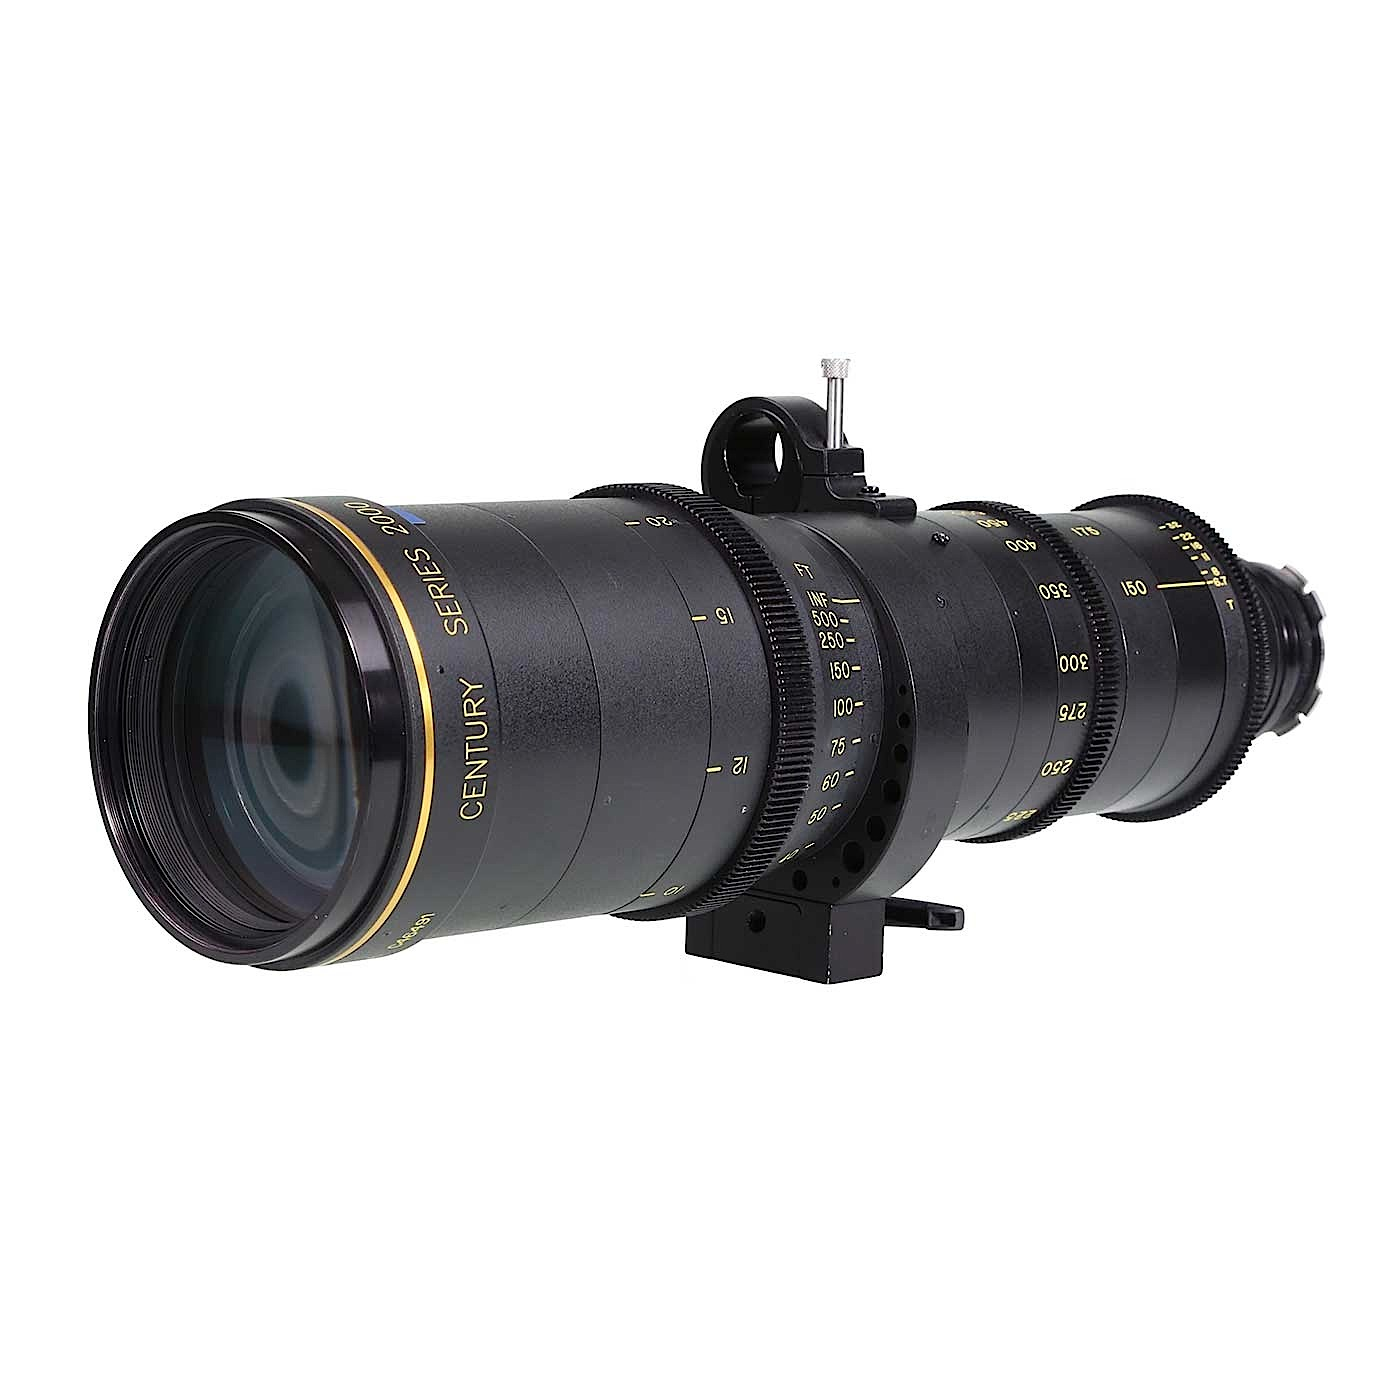 Century 150-600mm PL Series 2000 Zoom Lens